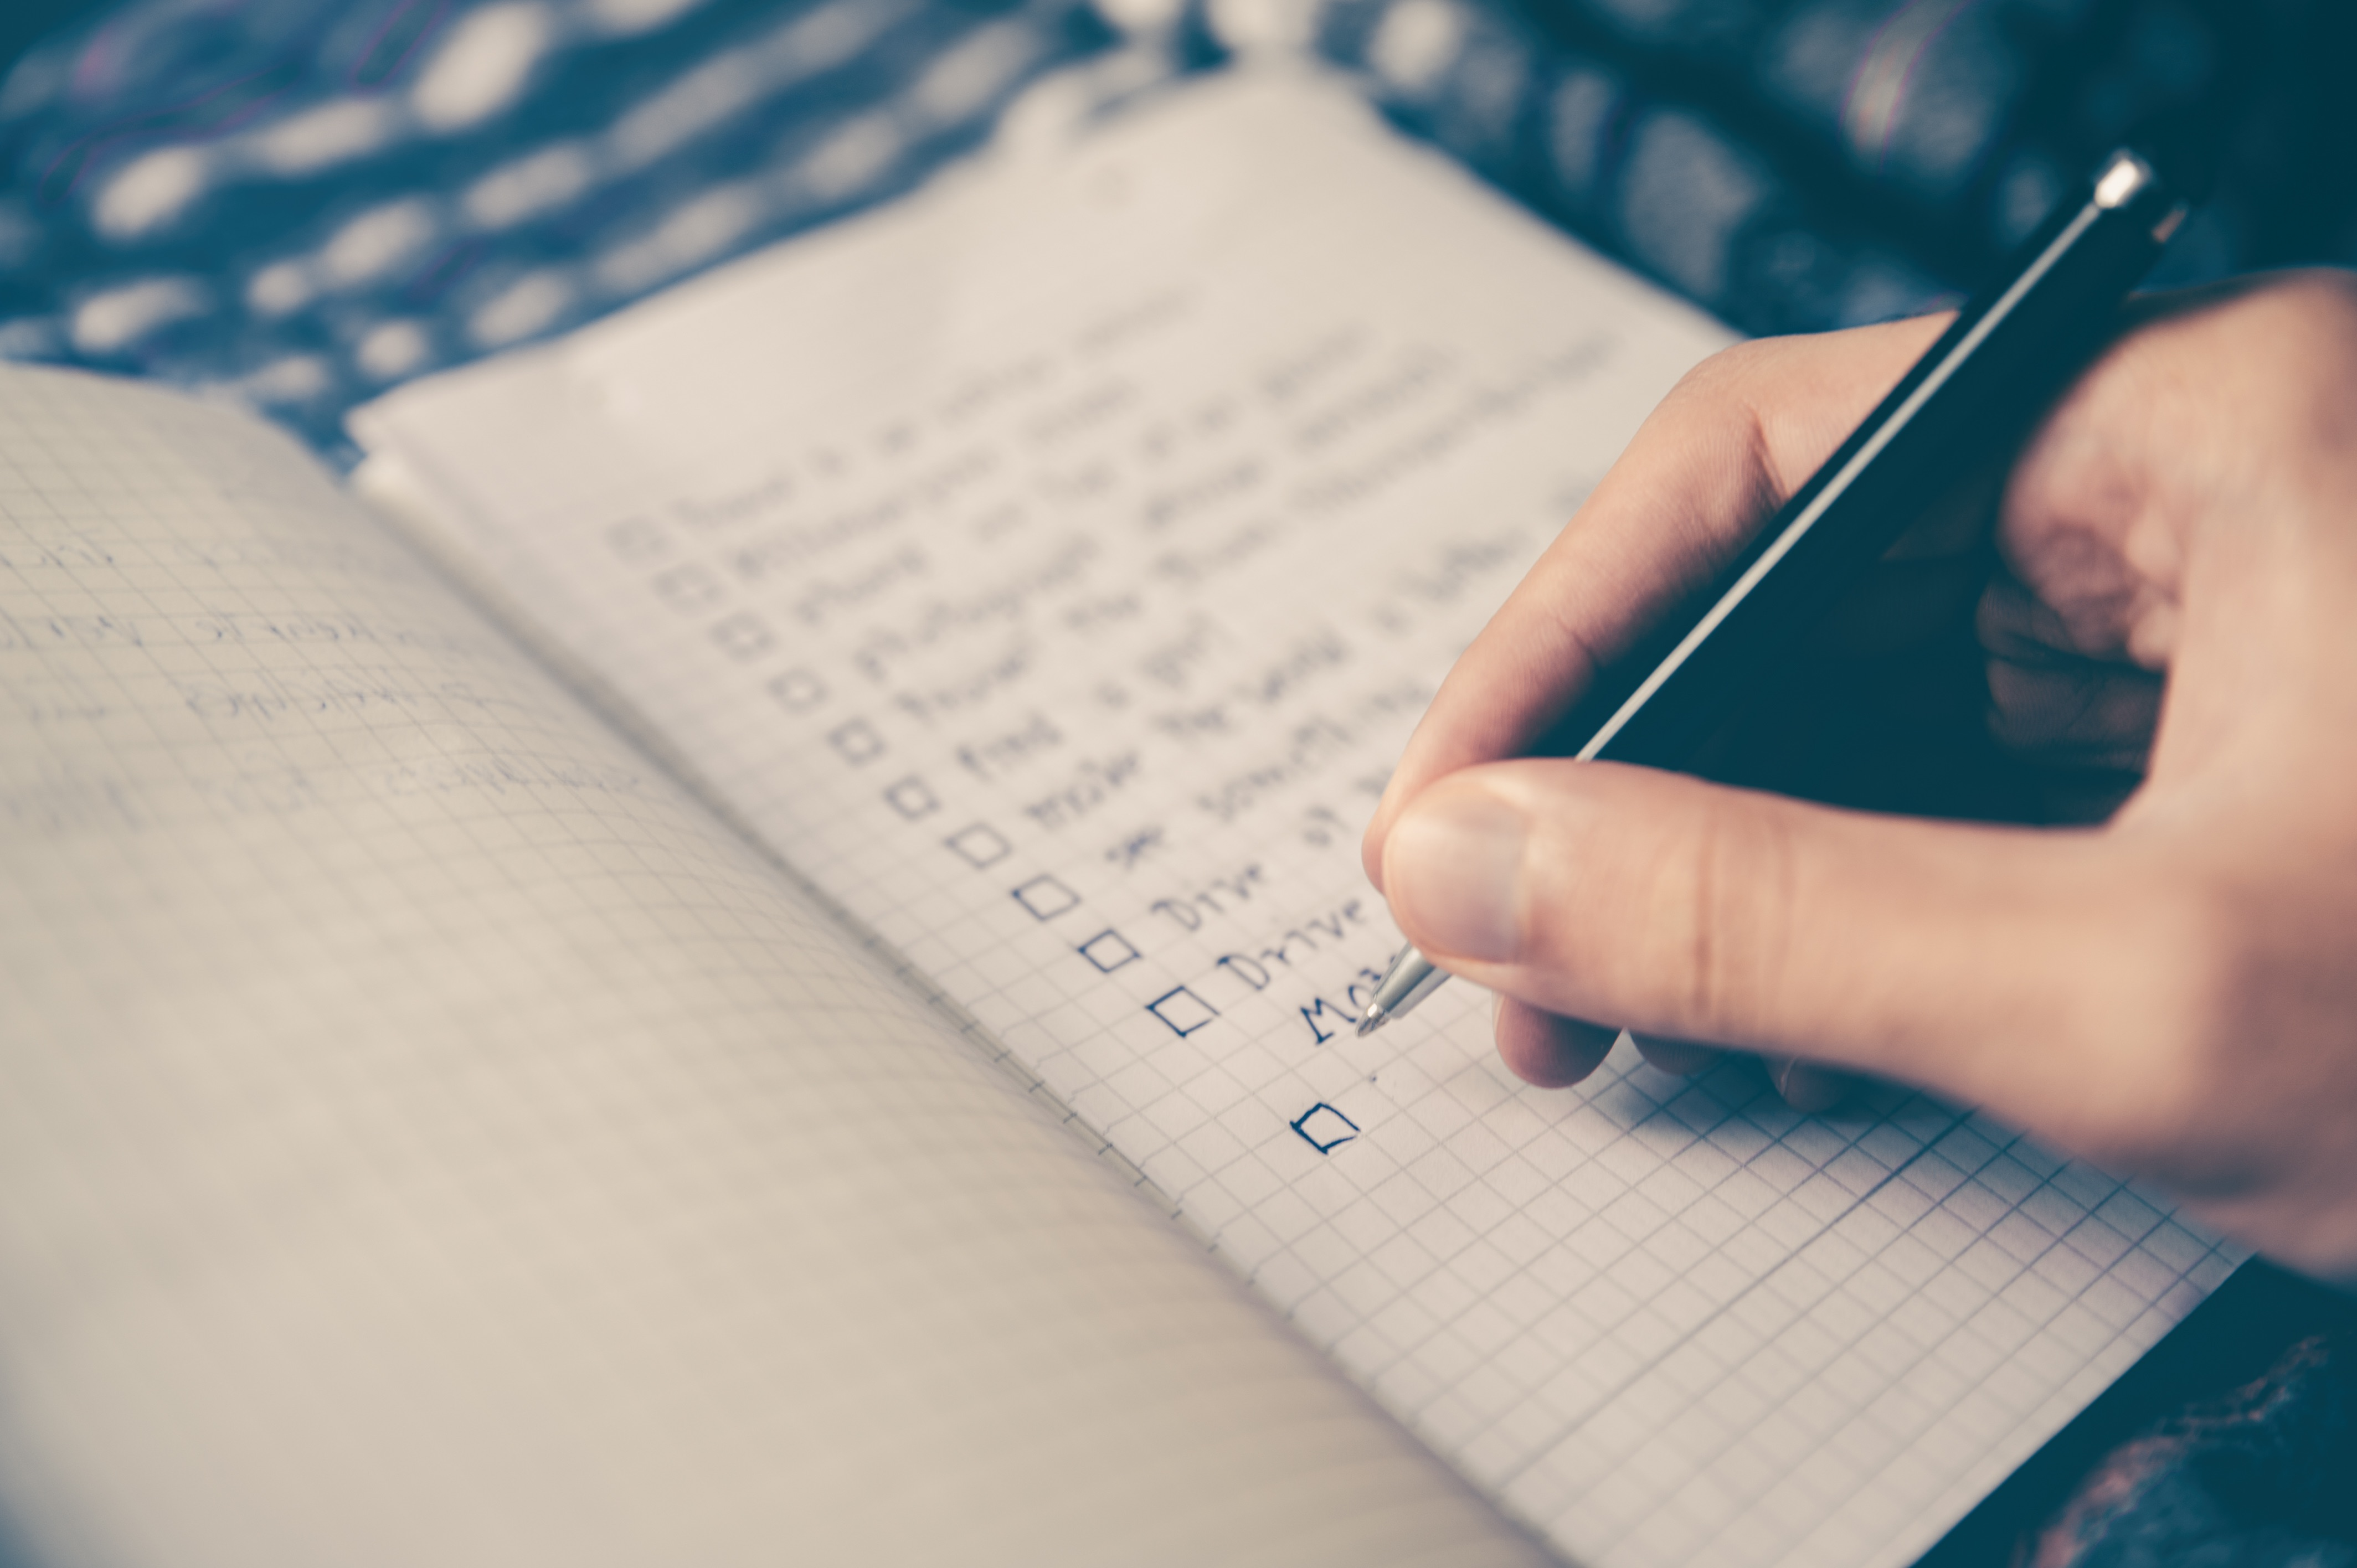 Setting Goals for Personal and Professional Growth